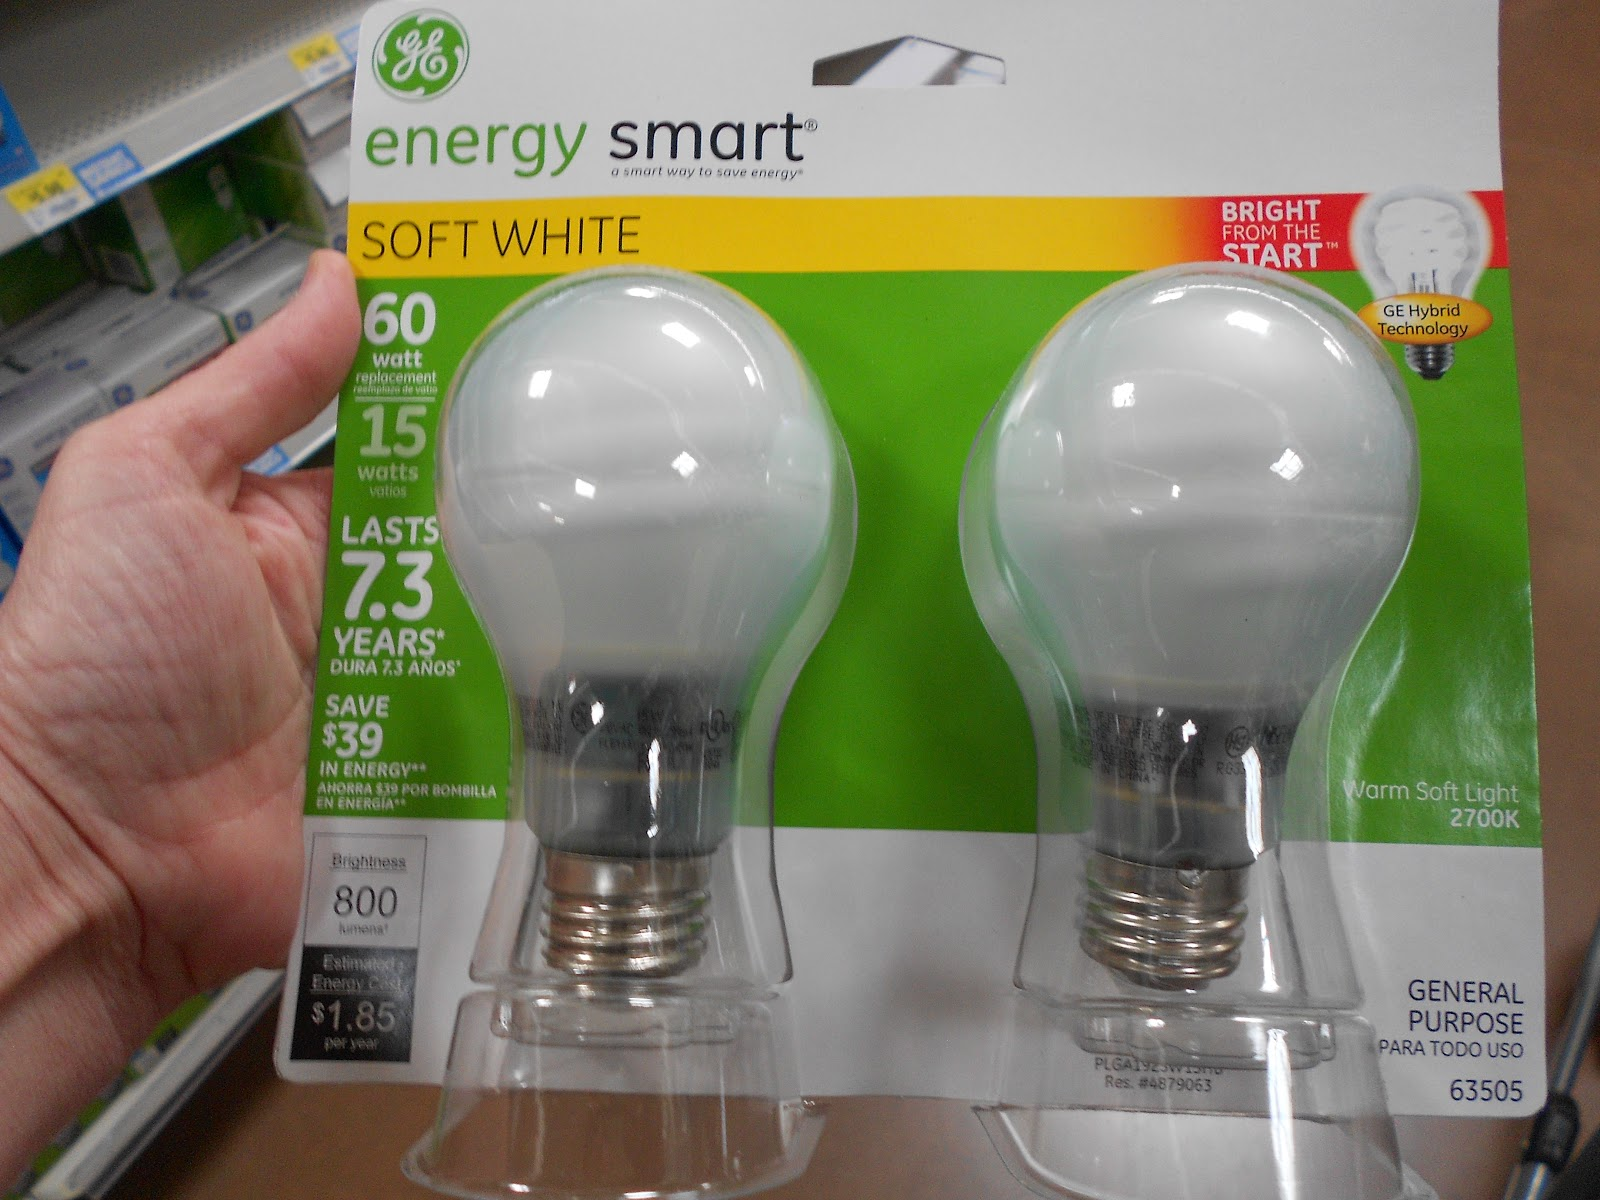 Saving Energy and Money By Switching To GE Energy Efficient Light Bulbs. Saving Energy and Money By Switching To GE Energy Efficient Light